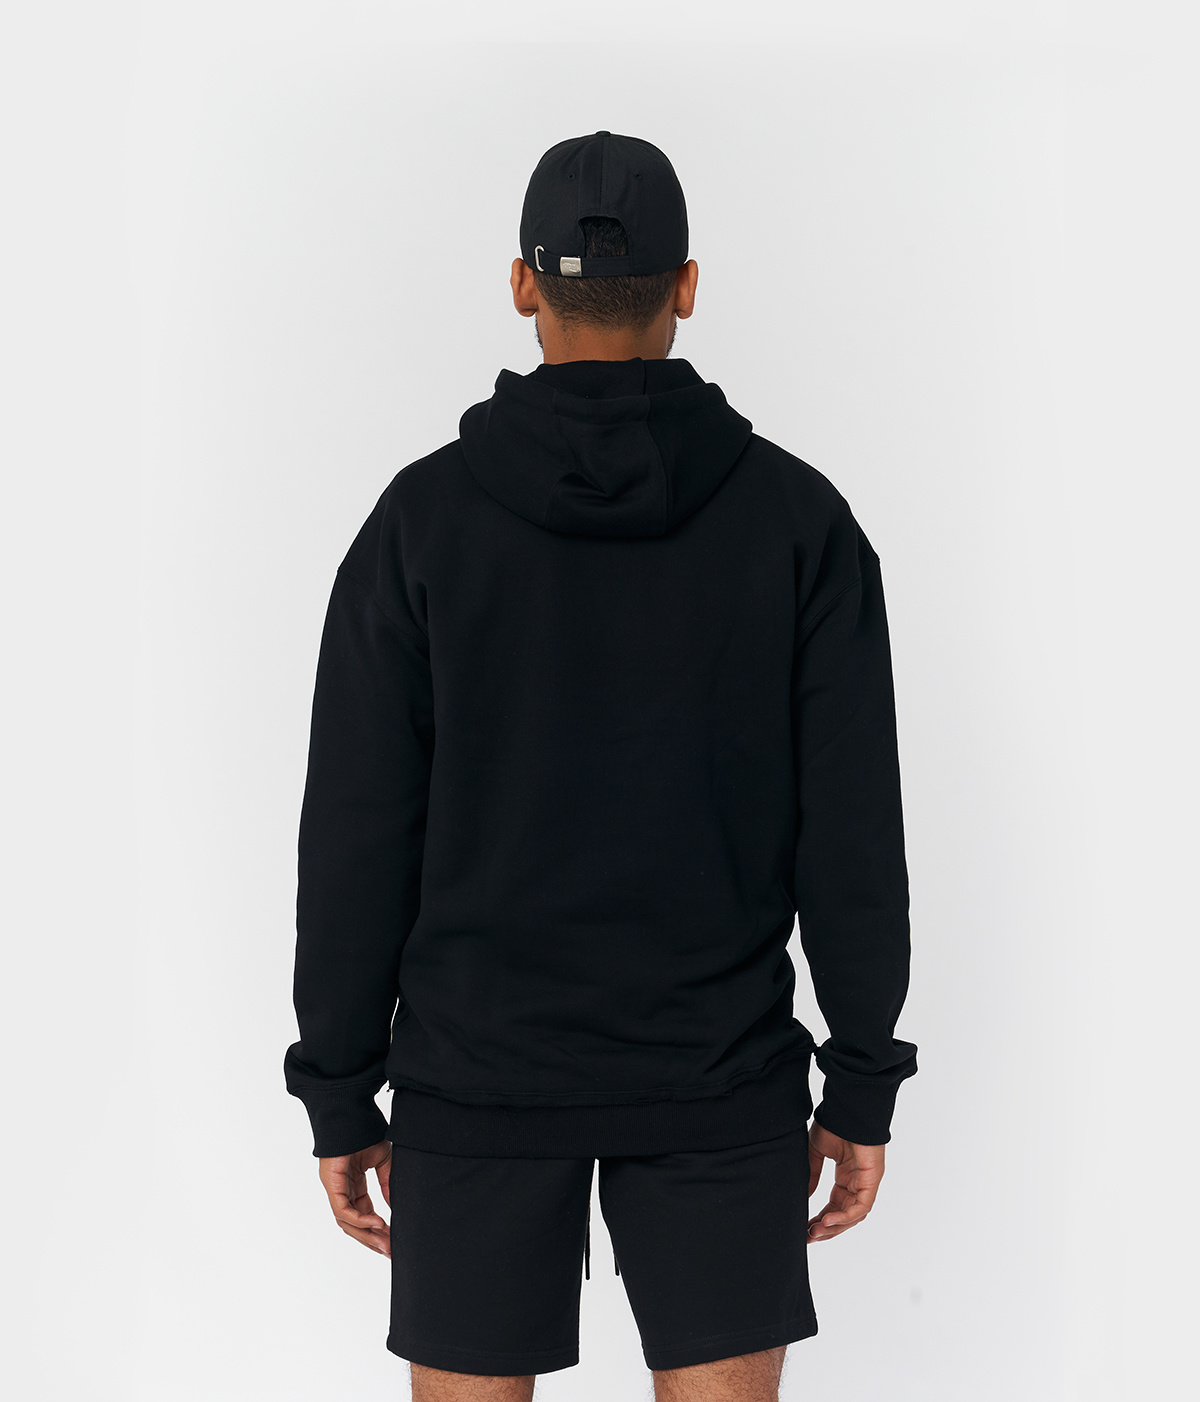 PS Black Superscript Hoodie